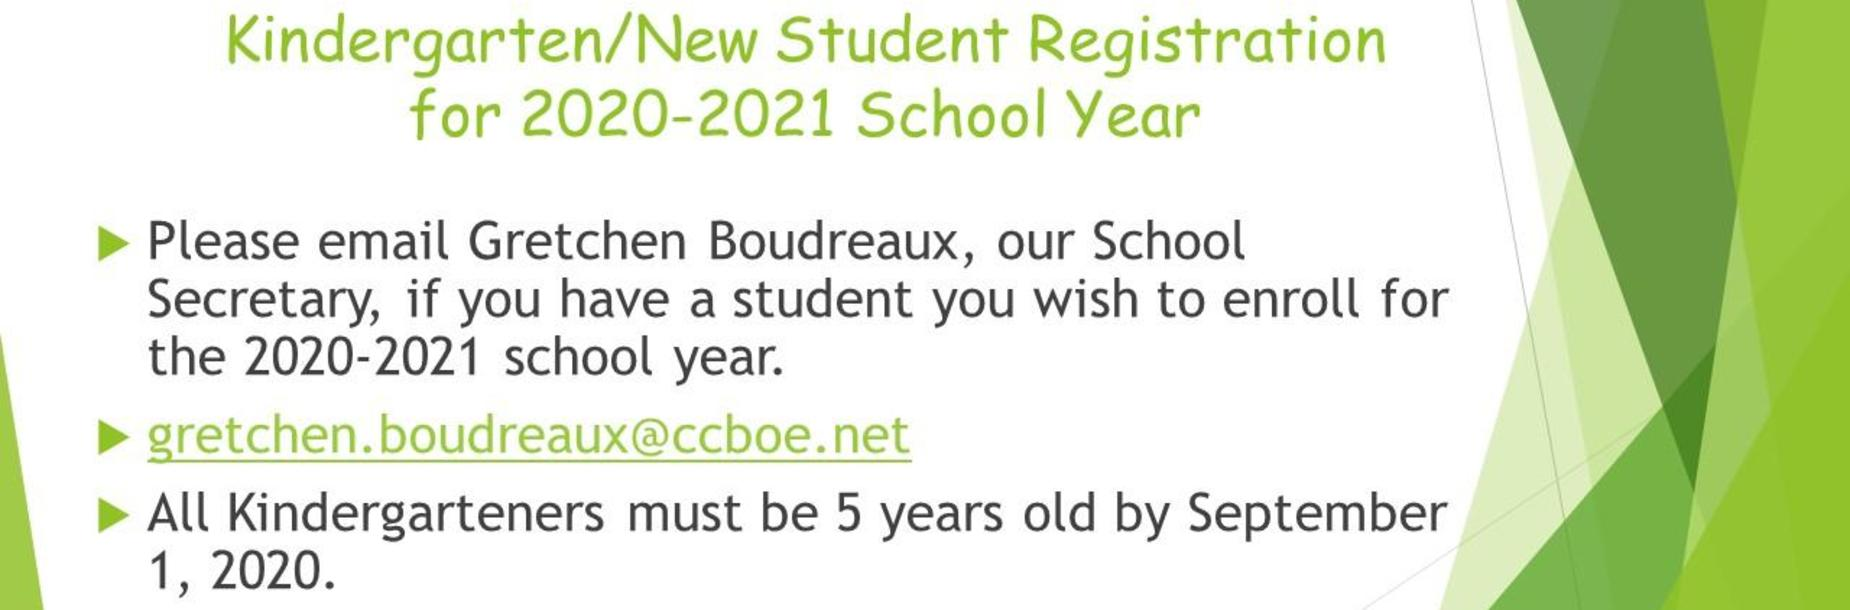 Kindergarten/New Student Registration 2020-21